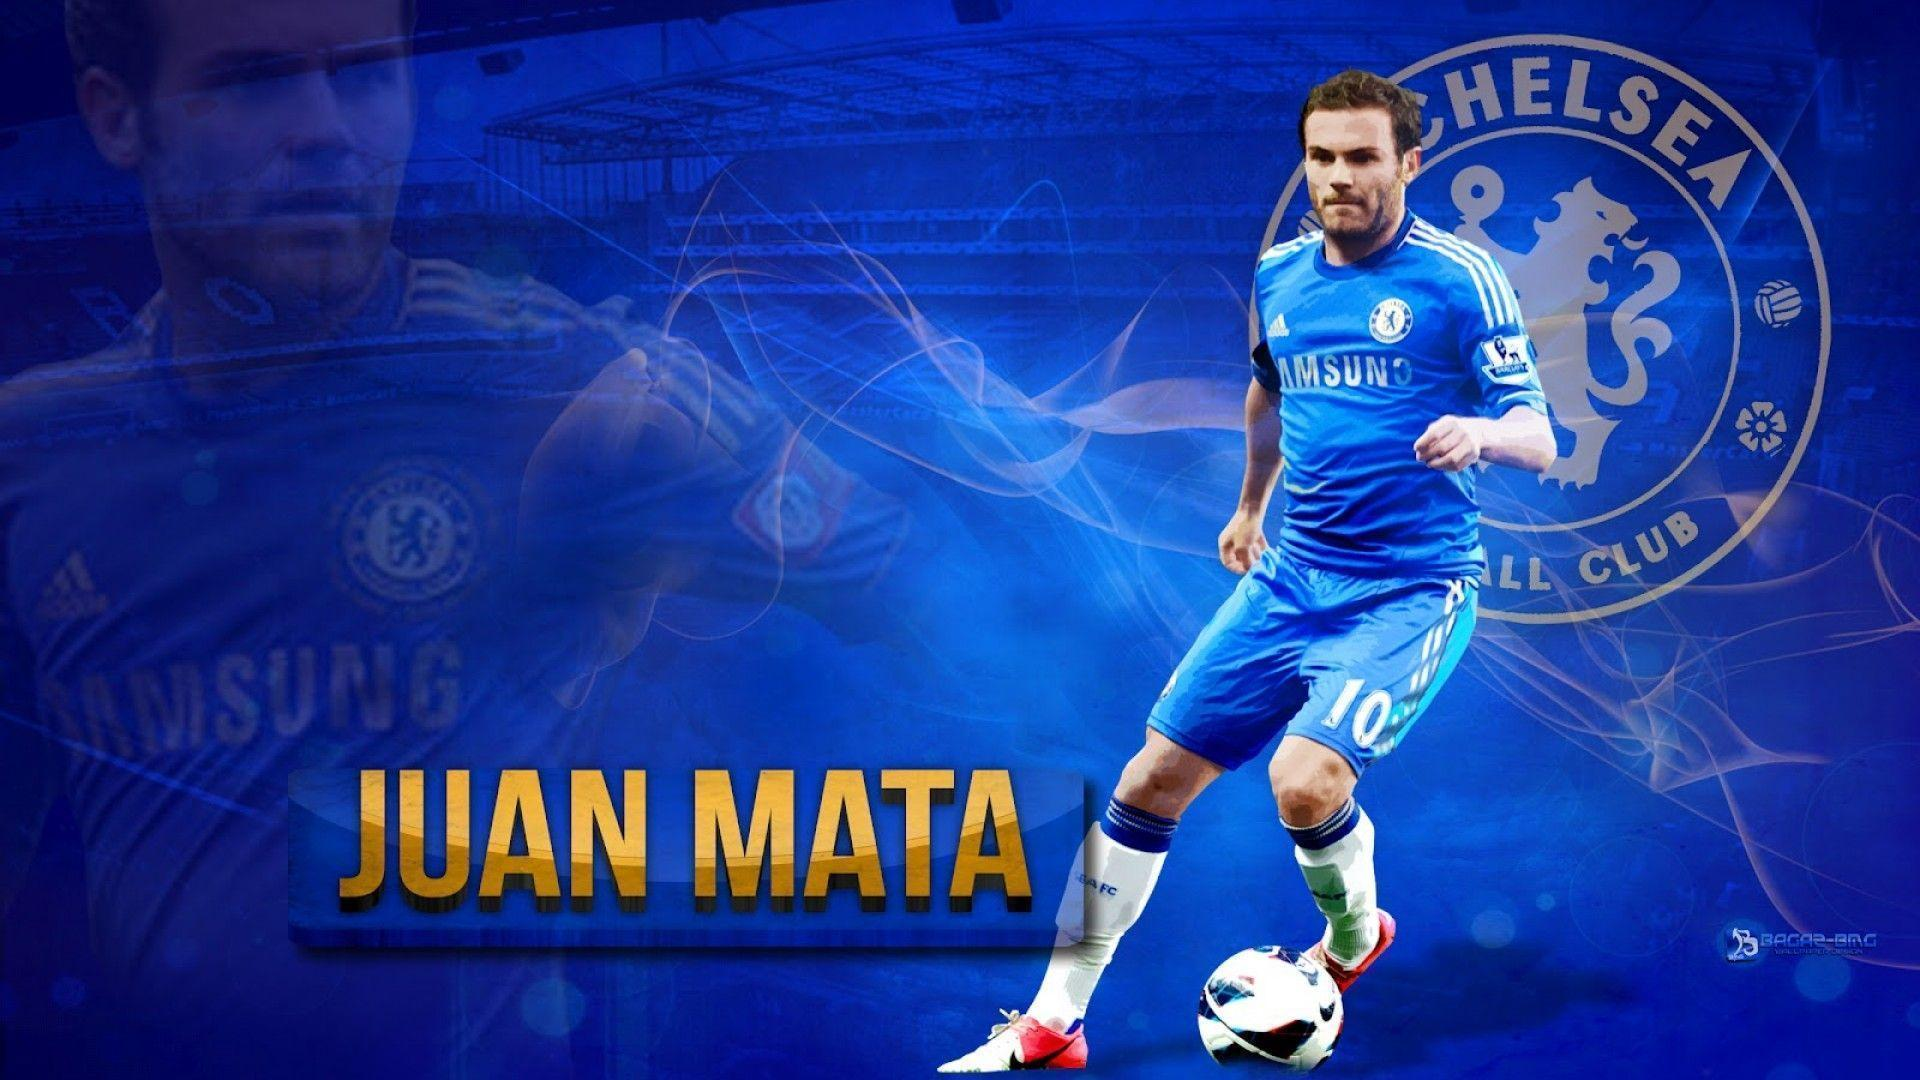 Juan Mata Chelsea Wallpaper #7022298